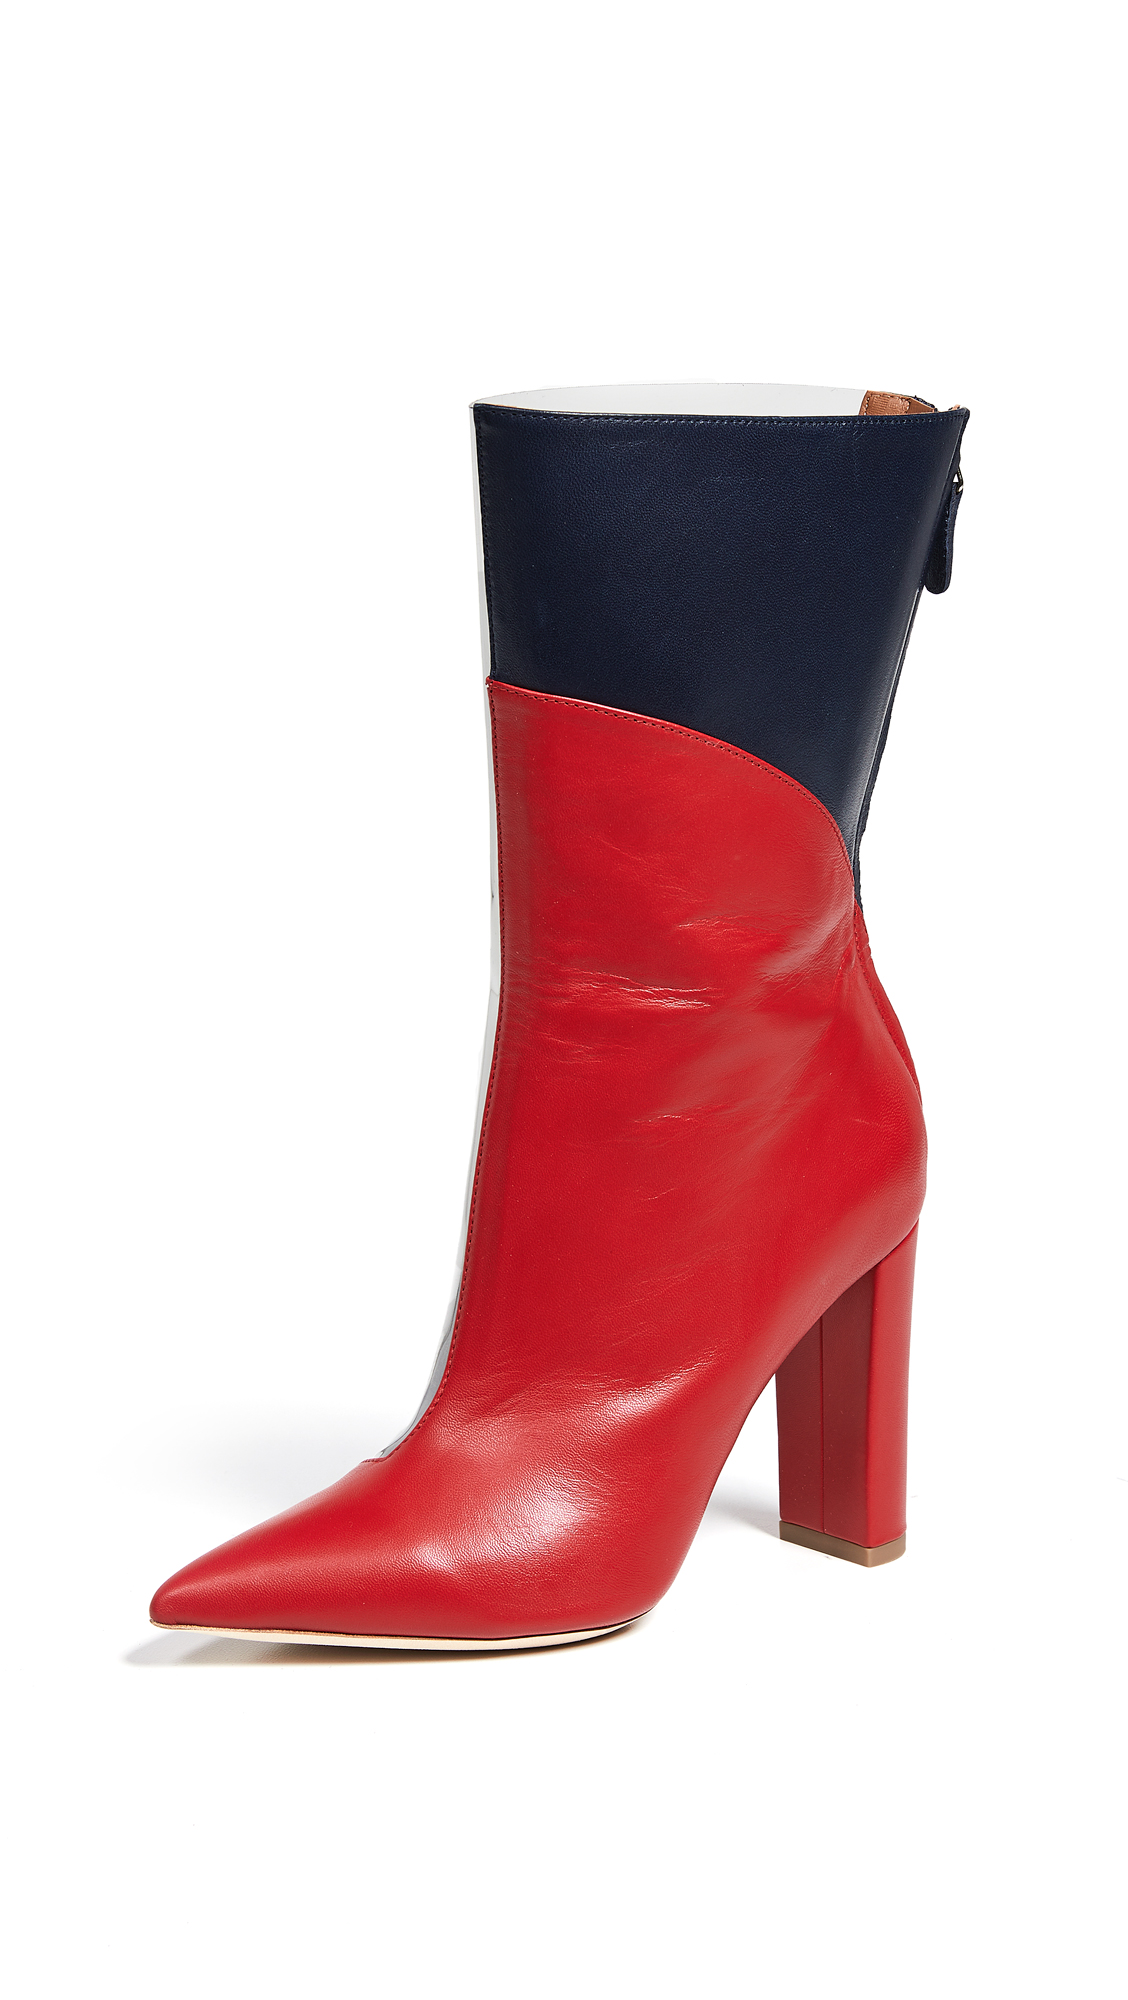 Malone Souliers Blaire 100 Boots - Grey/Red/Midnight